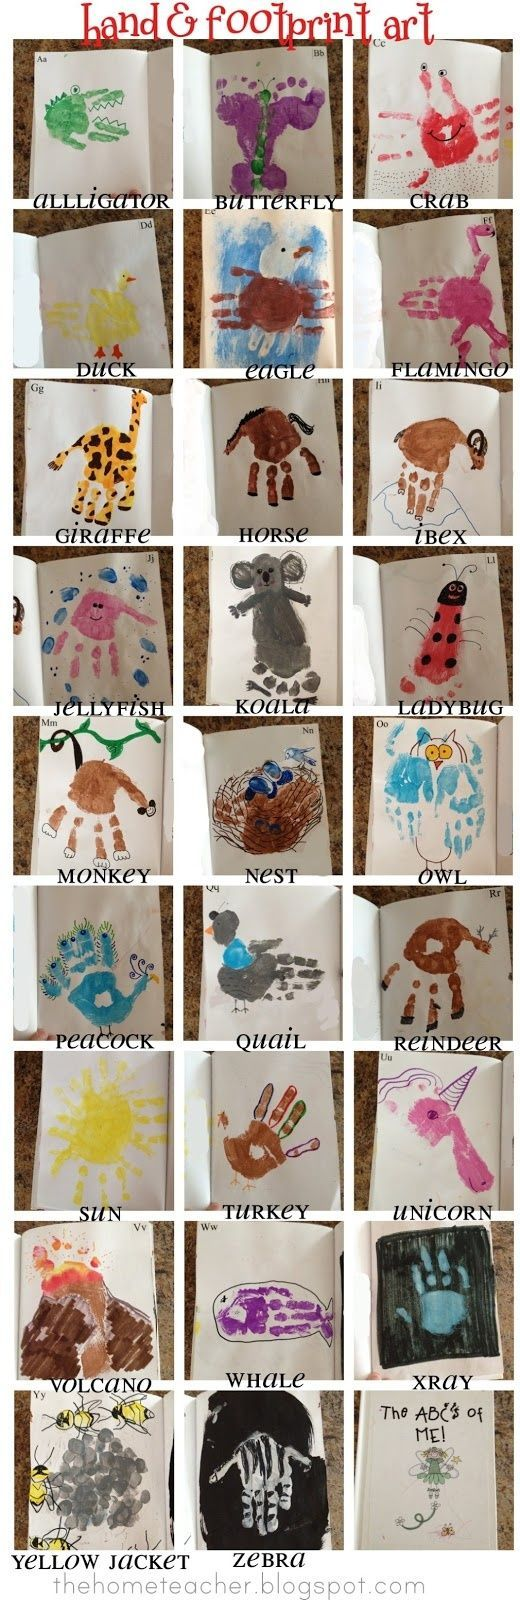 Handprint ABC craft. Cute idea and would be fun to do one as you introduce each letter, then bind into books at the end.